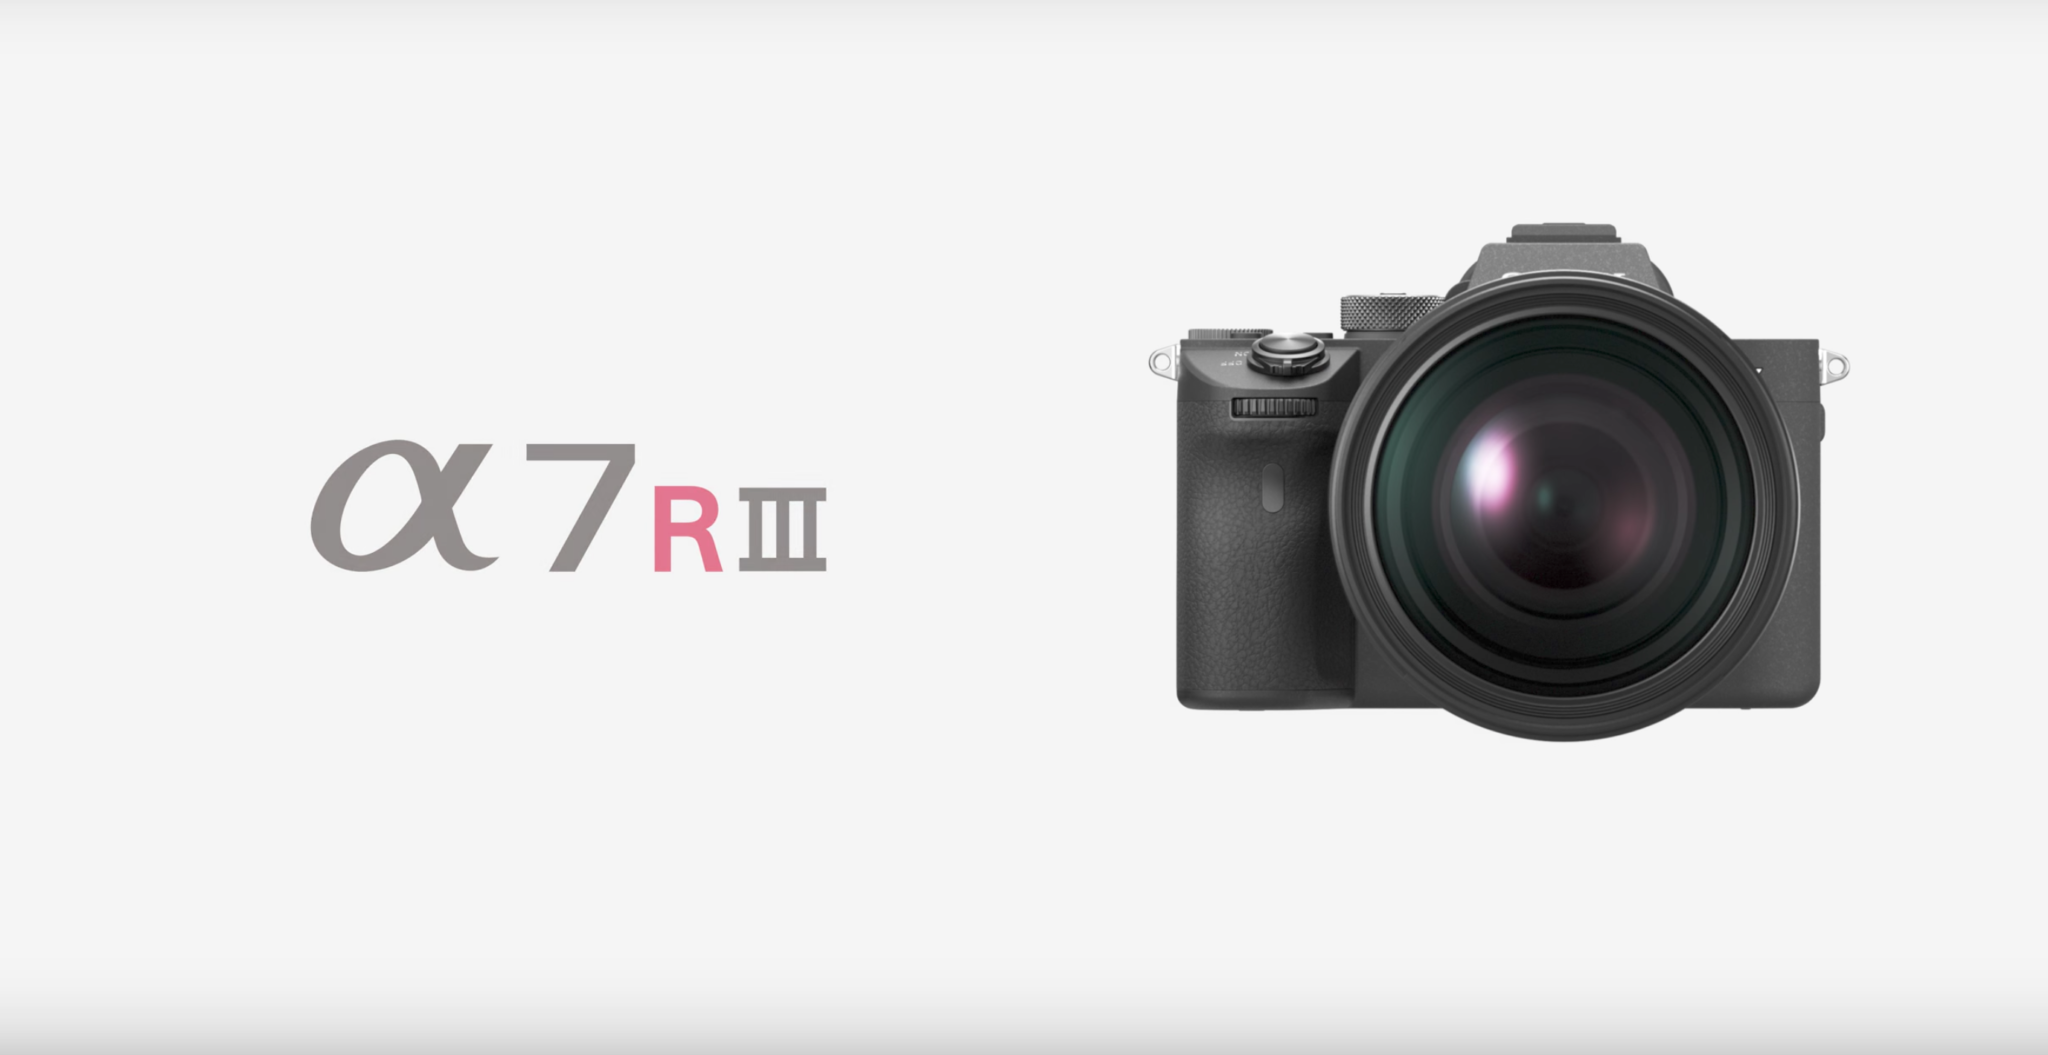 The Sony A7R III Features 15 Stops of Dynamic Range and the Sony a9's Autofocus